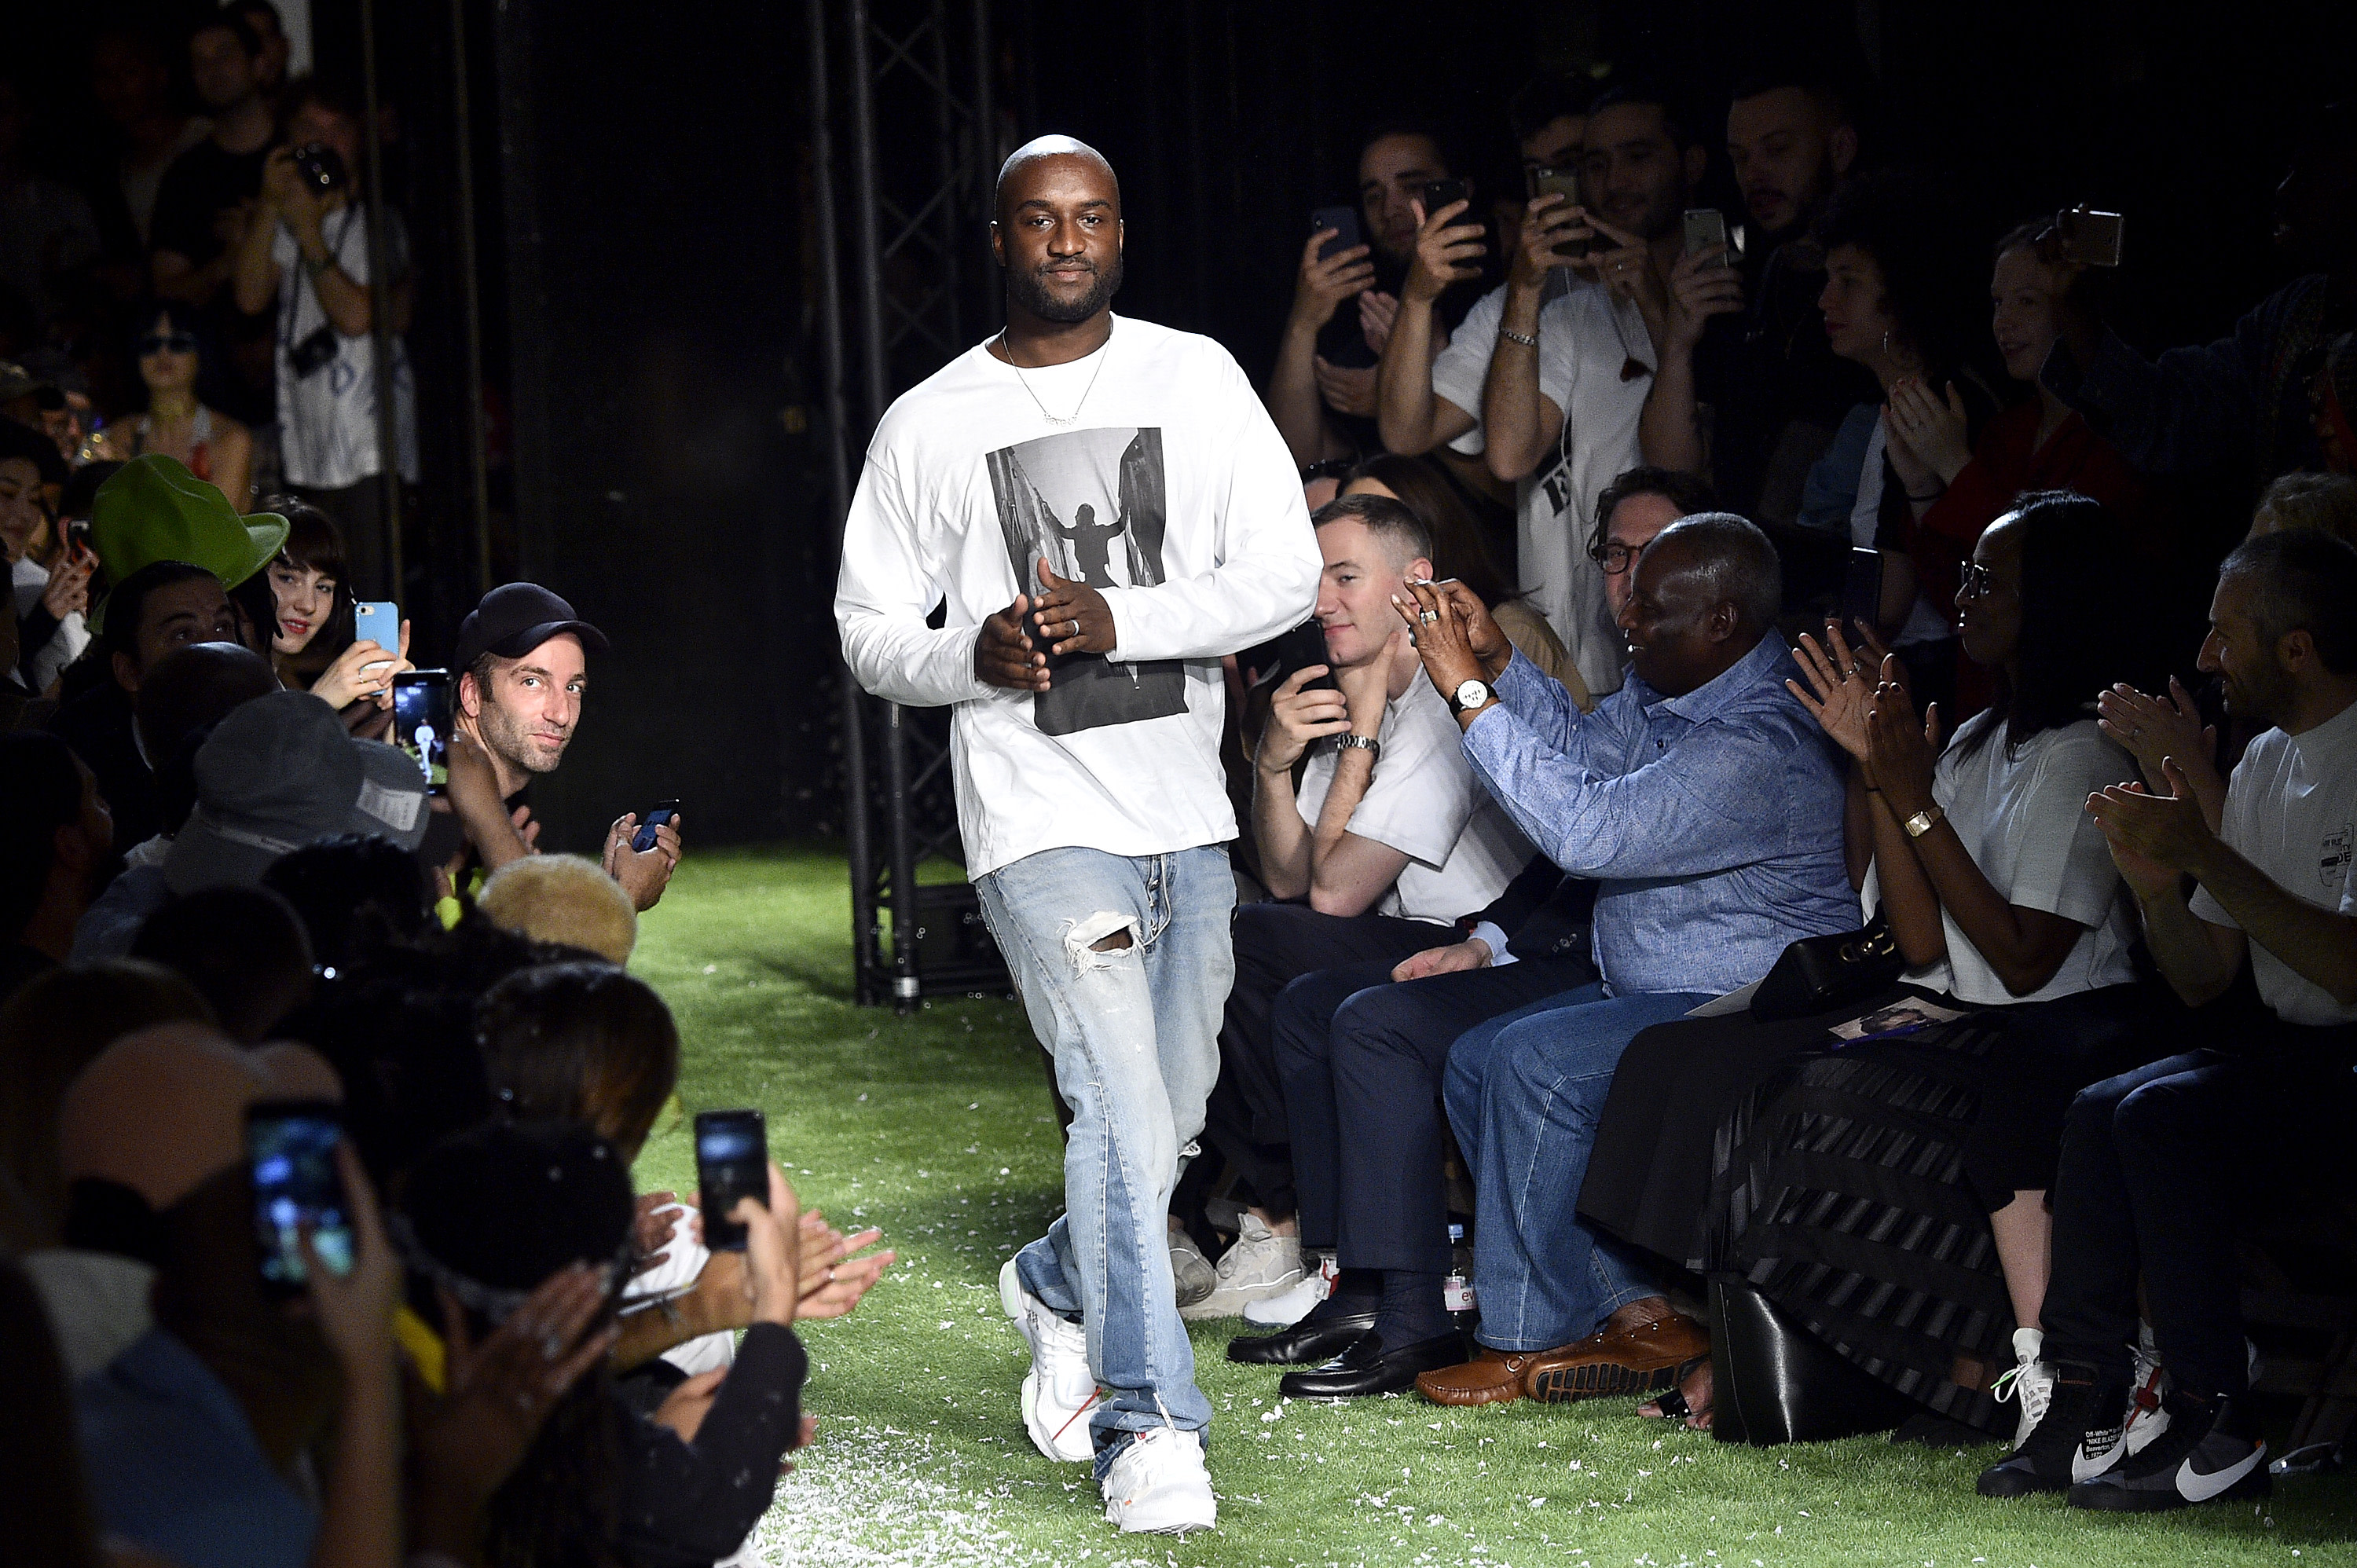 Virgil Abloh Doesn't Own Off-White, But He Owns Its Trademark. Here's What That Means.